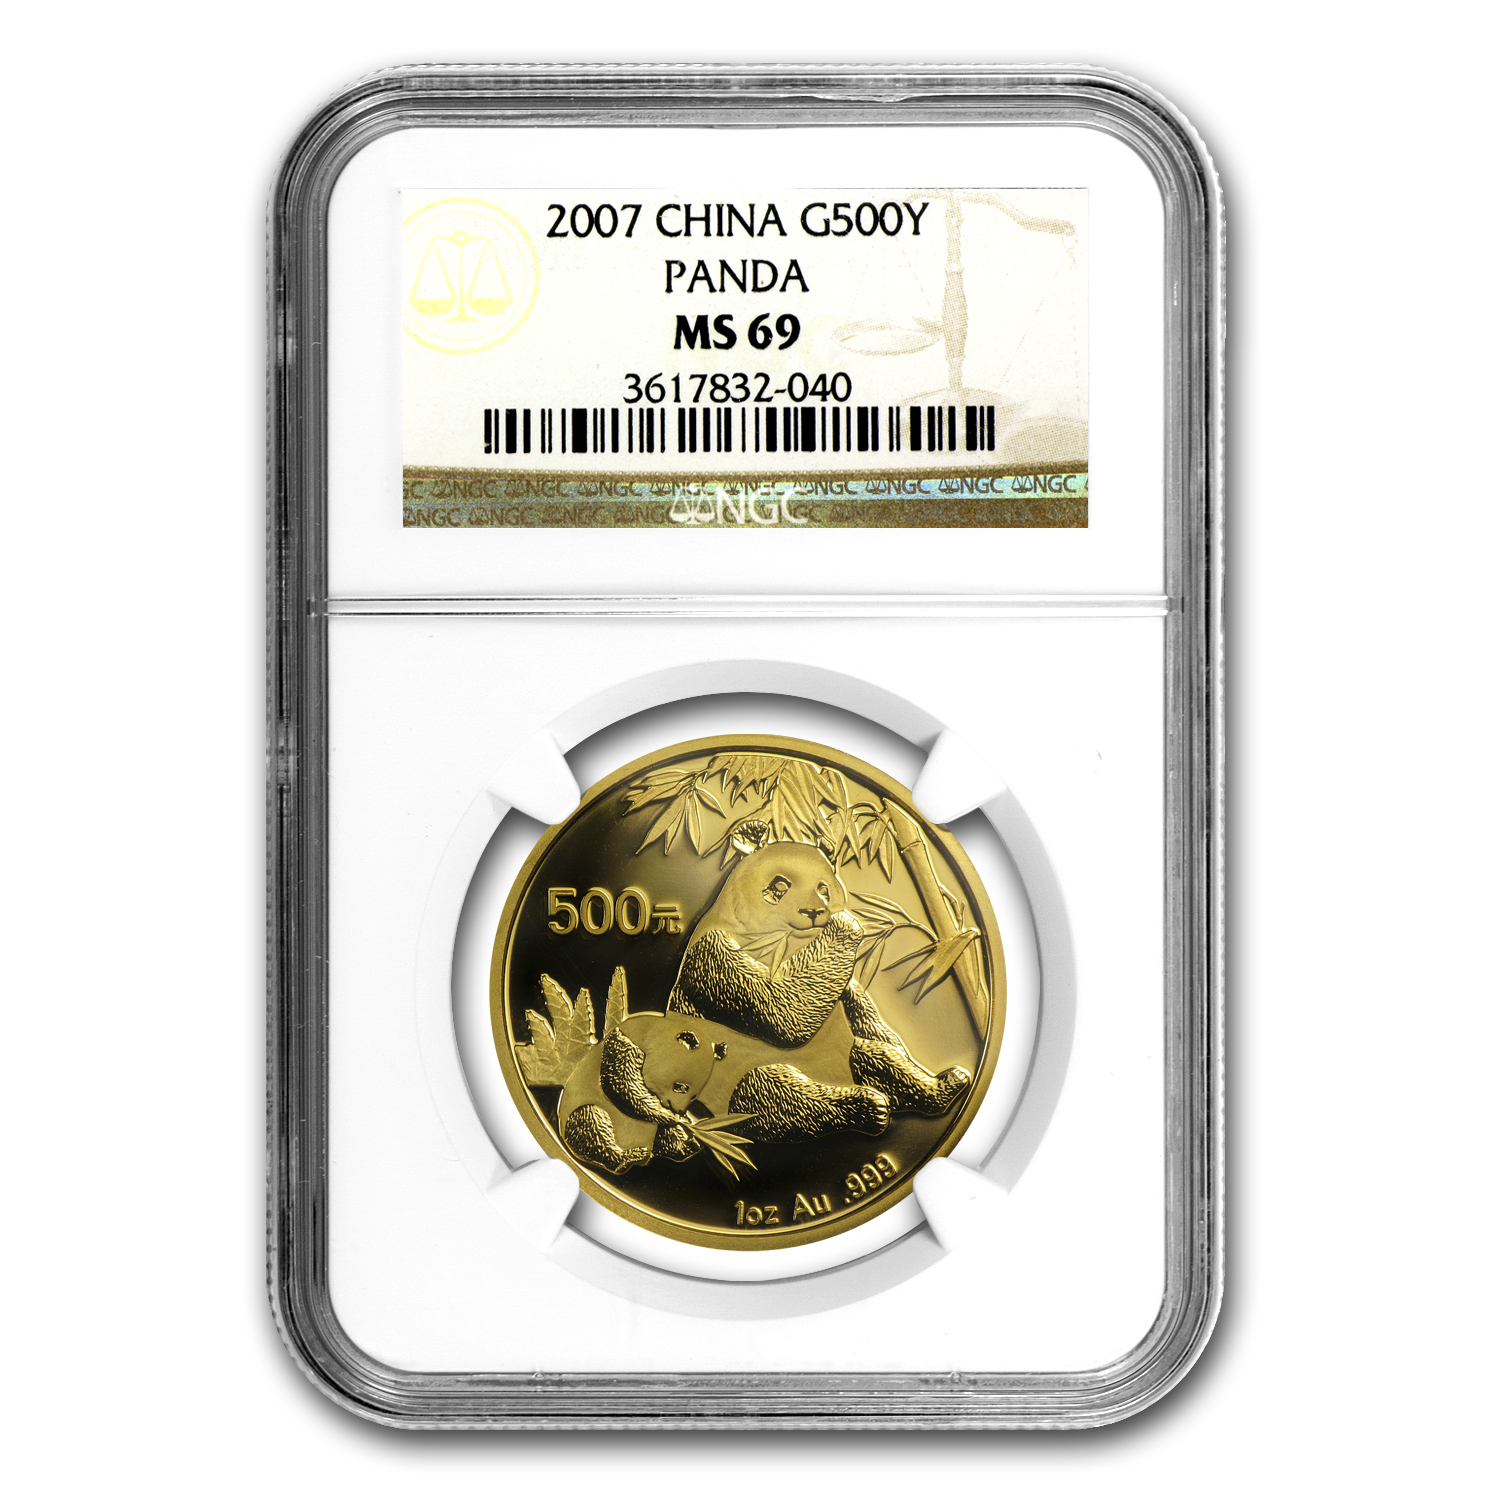 2007 China 1 oz Gold Panda MS-69 NGC